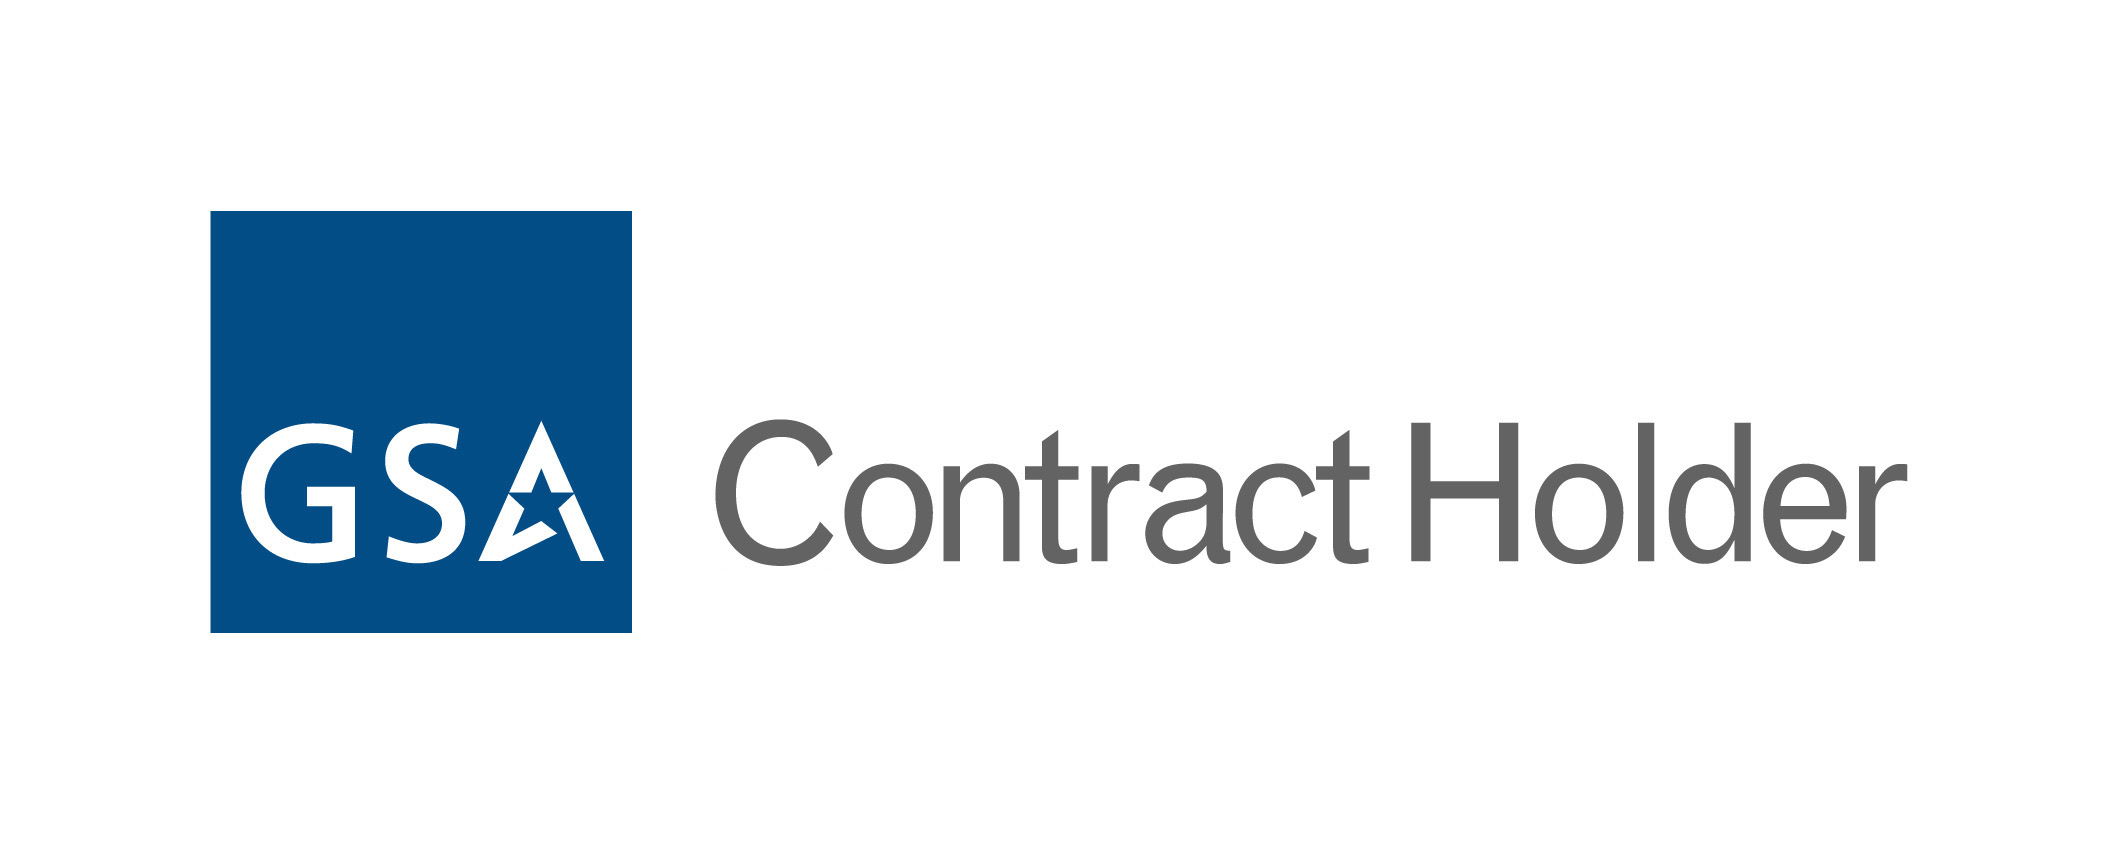 GSA Conteract Holder Logo